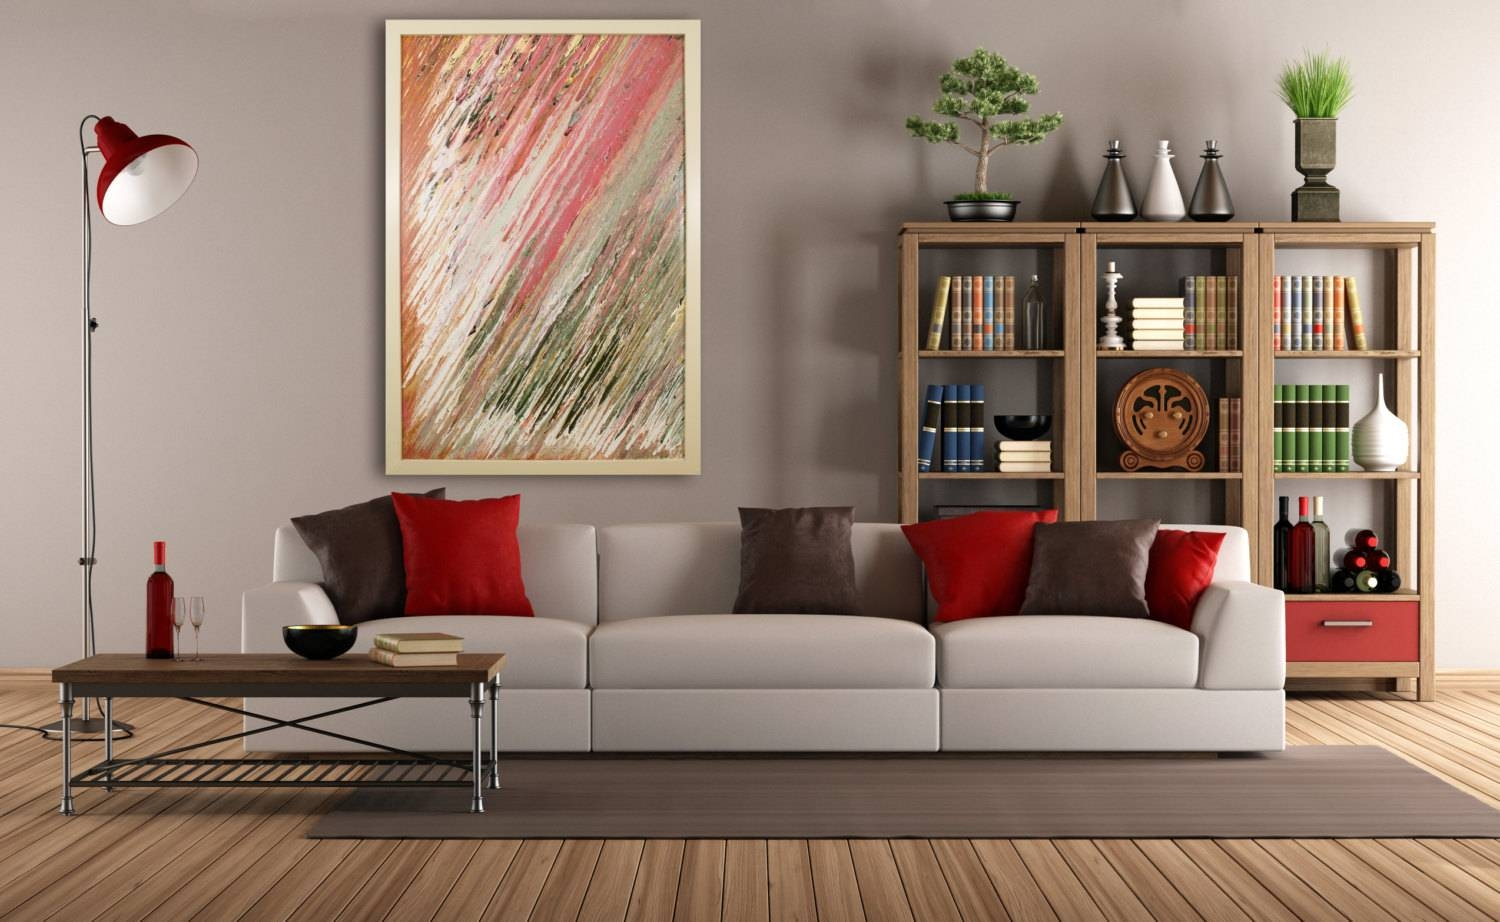 Extra Large Wall Art Original Abstract Glass Art Deco With Most Recent Oversized Wall Art Contemporary (View 7 of 20)